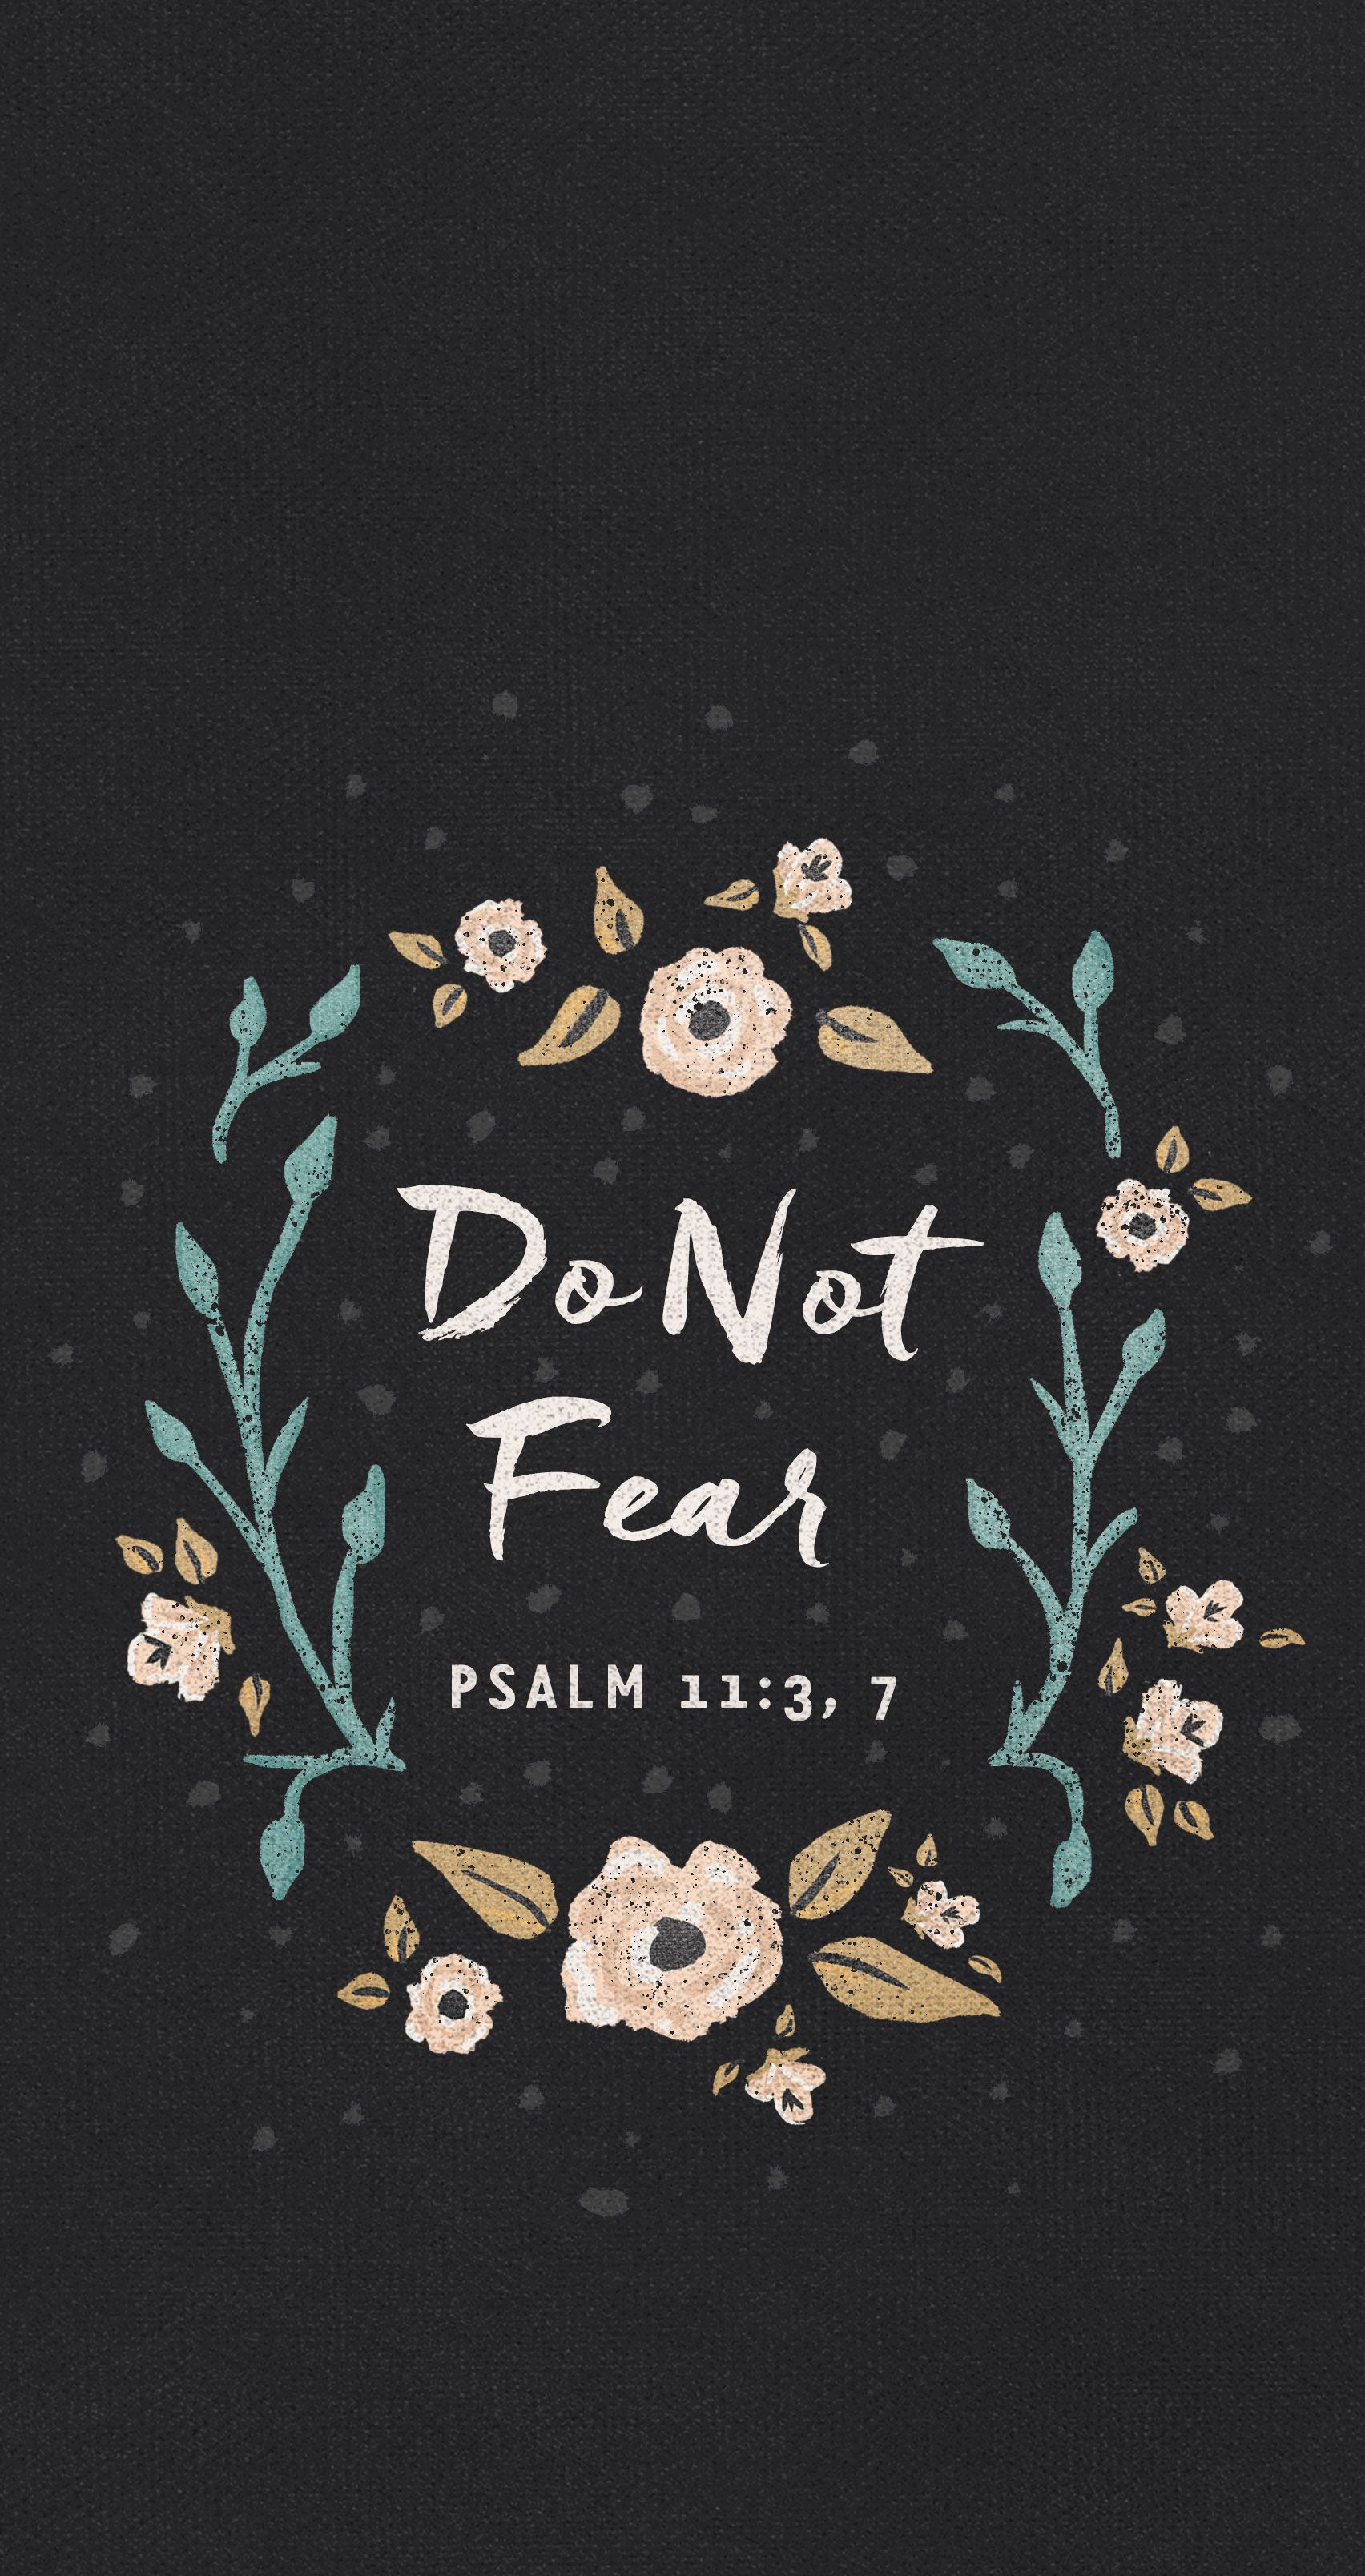 Psalm 11 | Daily Bread | Bible verse wallpaper, Psalm 11, Bible verses quotes